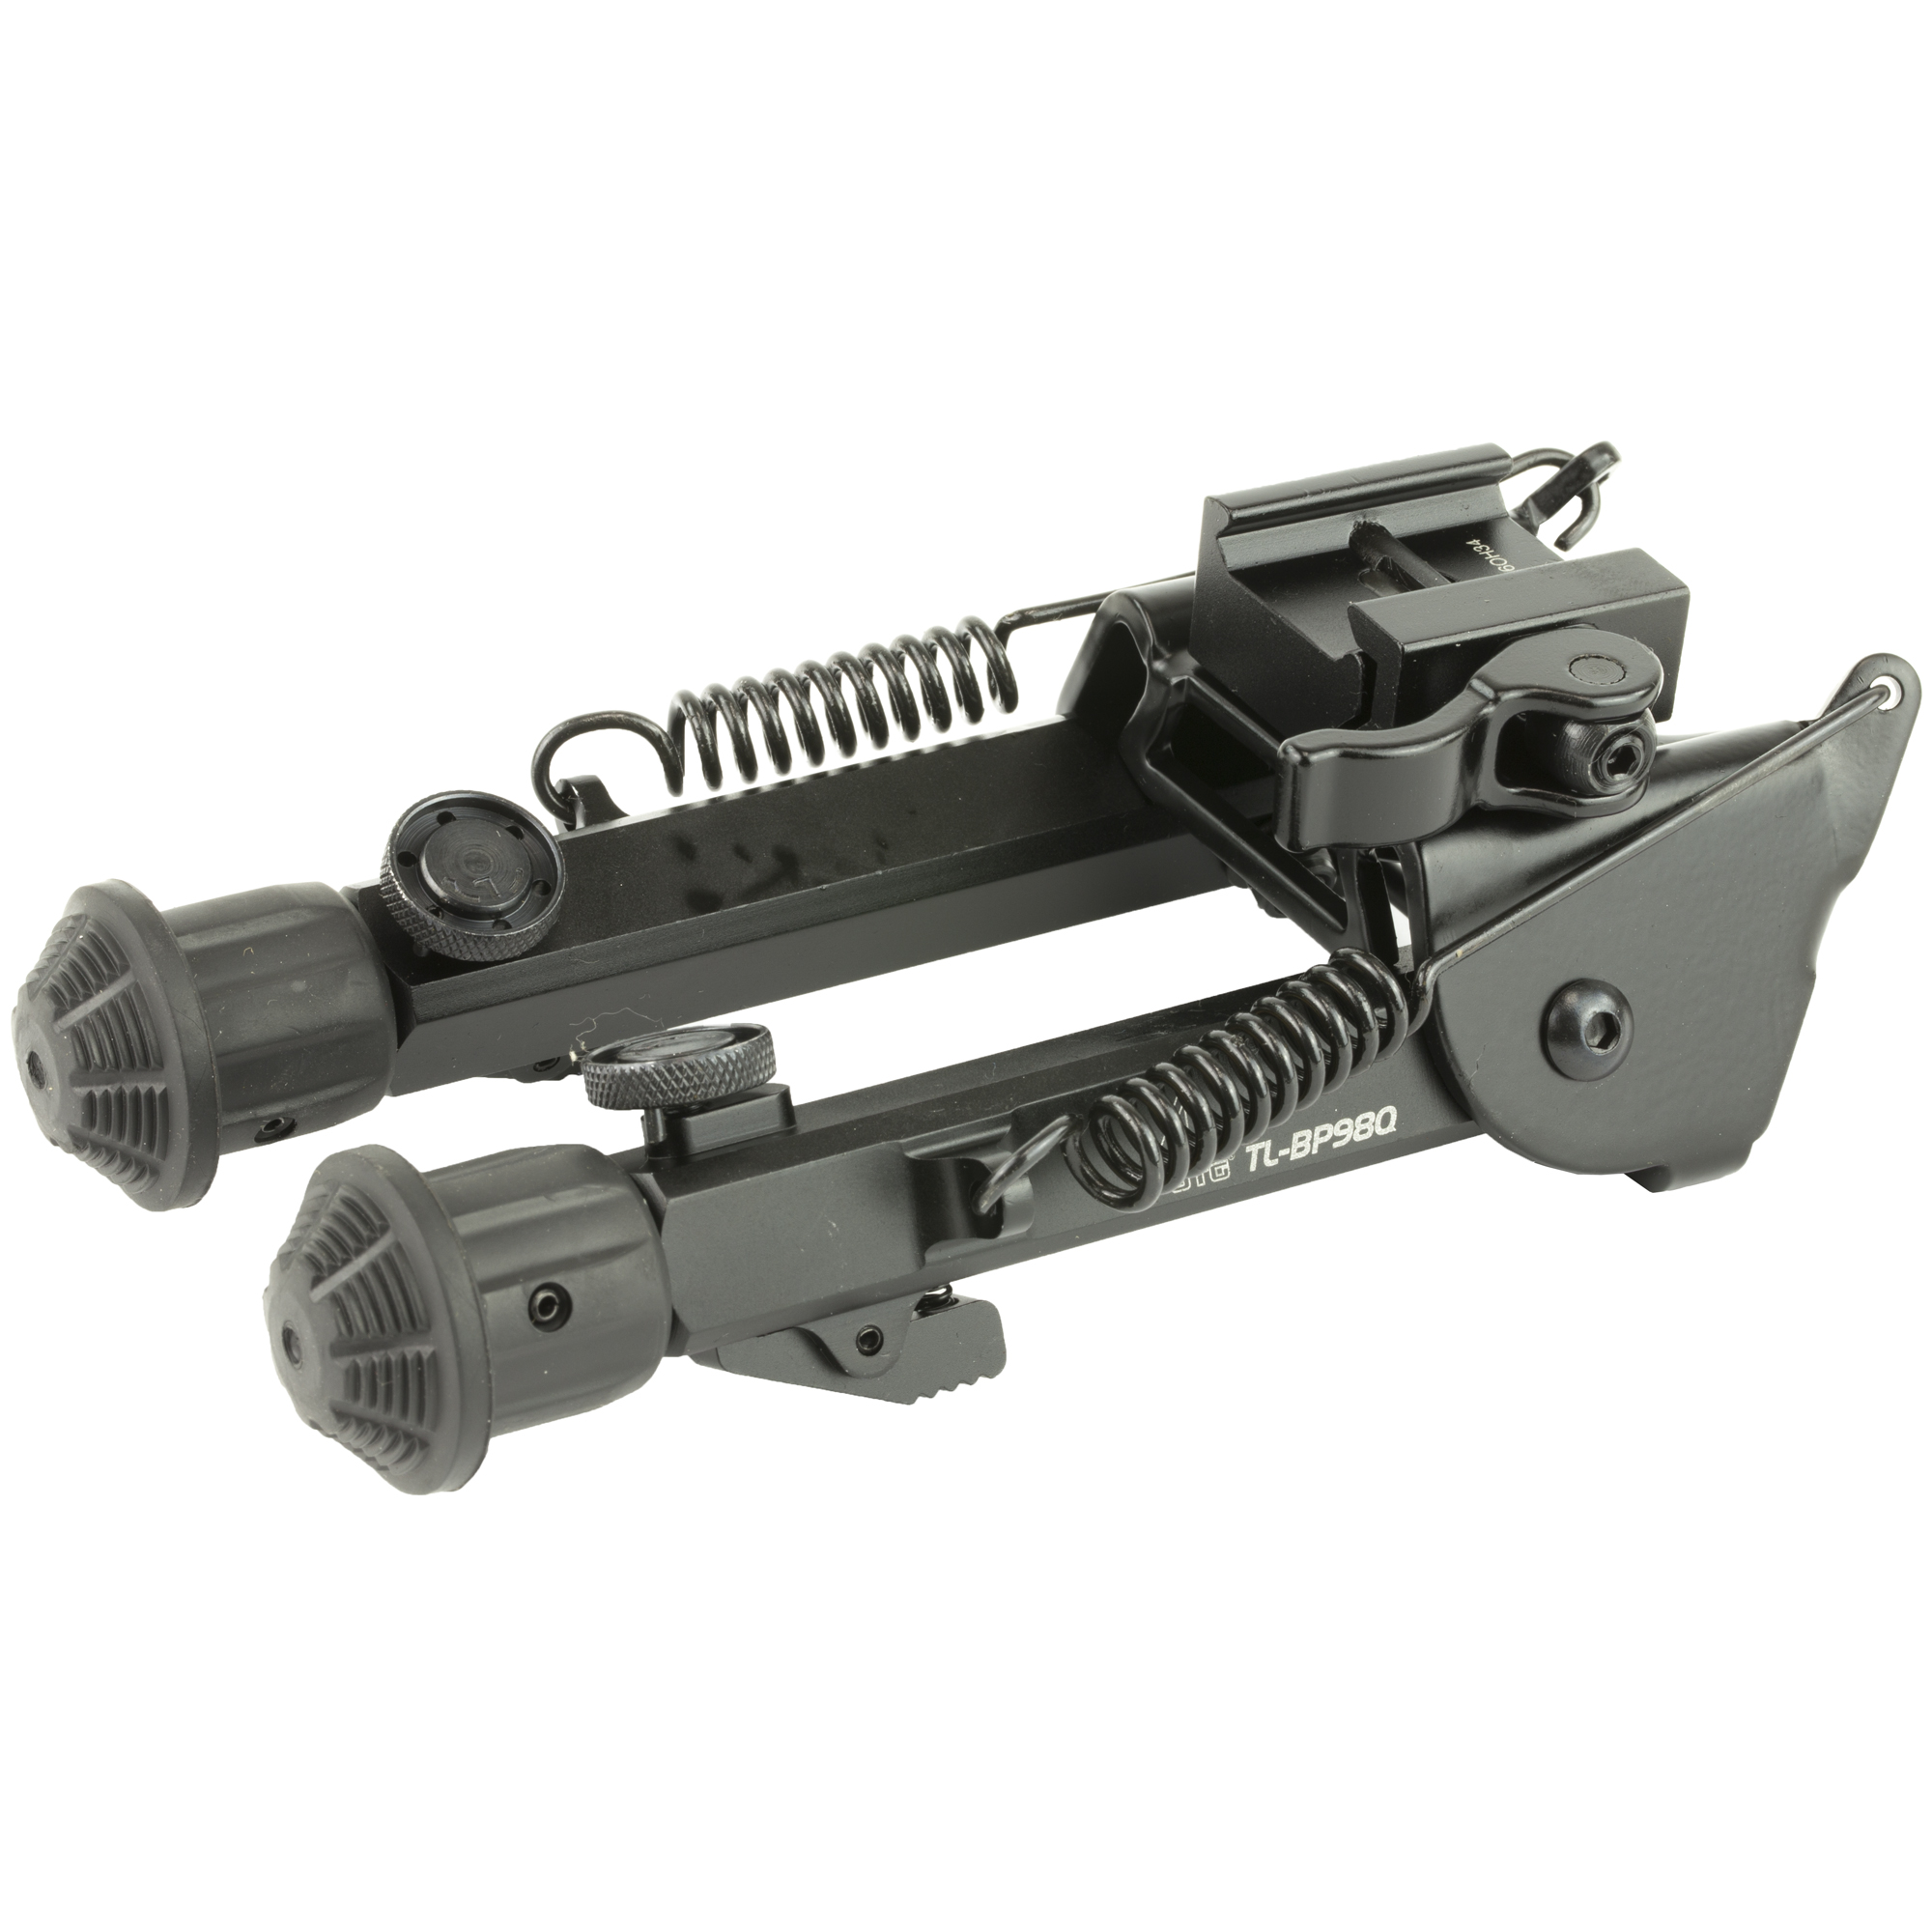 """The Leapers UTG Super-Duty Bipod with Quick-Detach Mount is a versatile and durable gun bipod that gives you dual mounting options"""" rapid deployment"""" quick and easy mounting"""" and a long service life. The quick-detach lever lock lets you rapidly attach or remove the rifle bipod"""" and the dual mounting kit lets you attach it to a swivel stud mounting point or to a Picatinny rail or Weaver rail. The Leapers UTG Super-Duty Op Bipod has variable-length legs that can give you 6"""" to 8.5"""" of clearance"""" to suit the terrain and your shooting style. Other noteworthy features include double support bars for added structural strength"""" a robust external spring for tension control"""" and a five-notch leg extension with push-button release. The Leapers UTG OP Super-duty Bipod has heavy duty rubberized foot pads to provide a strong grip on any surface."""